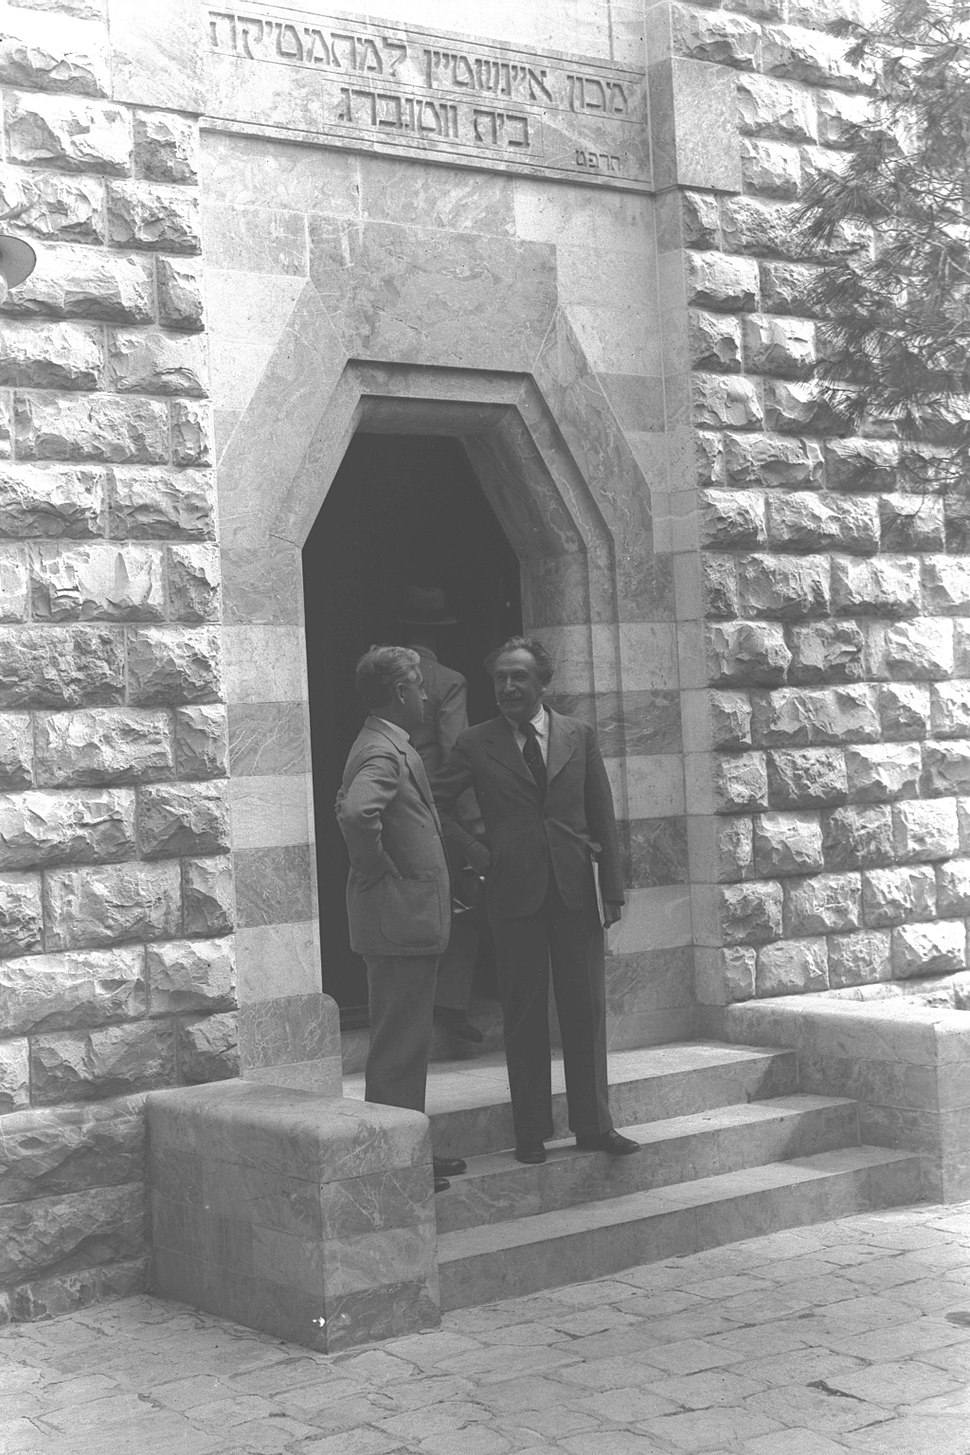 PROF. HUGO BERGMAN WITH THE AMERICAN DONOR FINKEL AT THE ENTRANCE TO THE INSTITUTE OF MATHEMATICS OF THE HEBREW UNIVERSITY IN JERUSALEM. הכניסה למכון D10-120